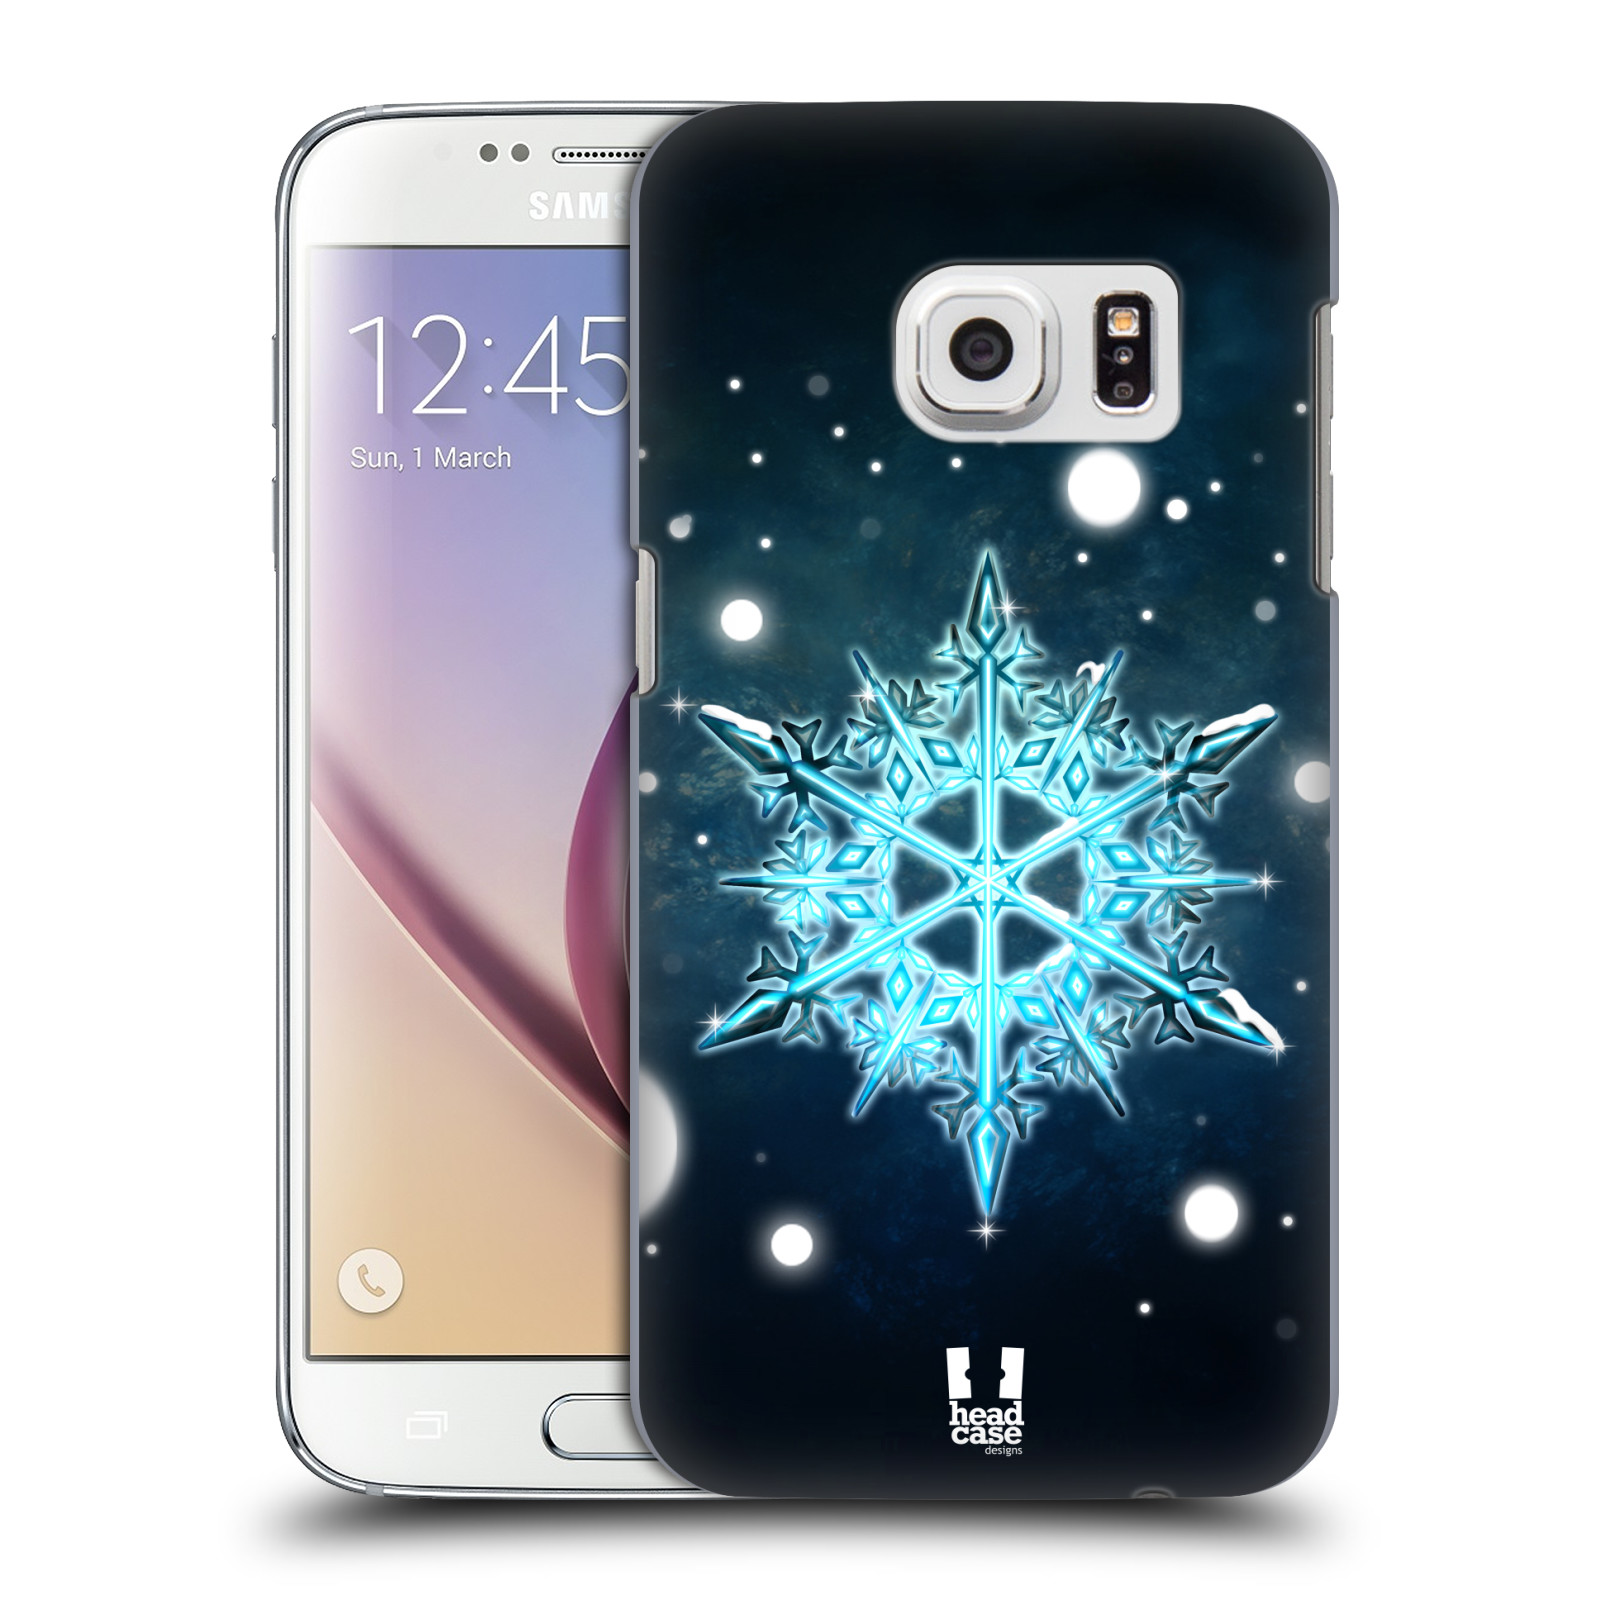 HEAD CASE DESIGNS SNOWFLAKES HARD BACK CASE FOR SAMSUNG PHONES 1